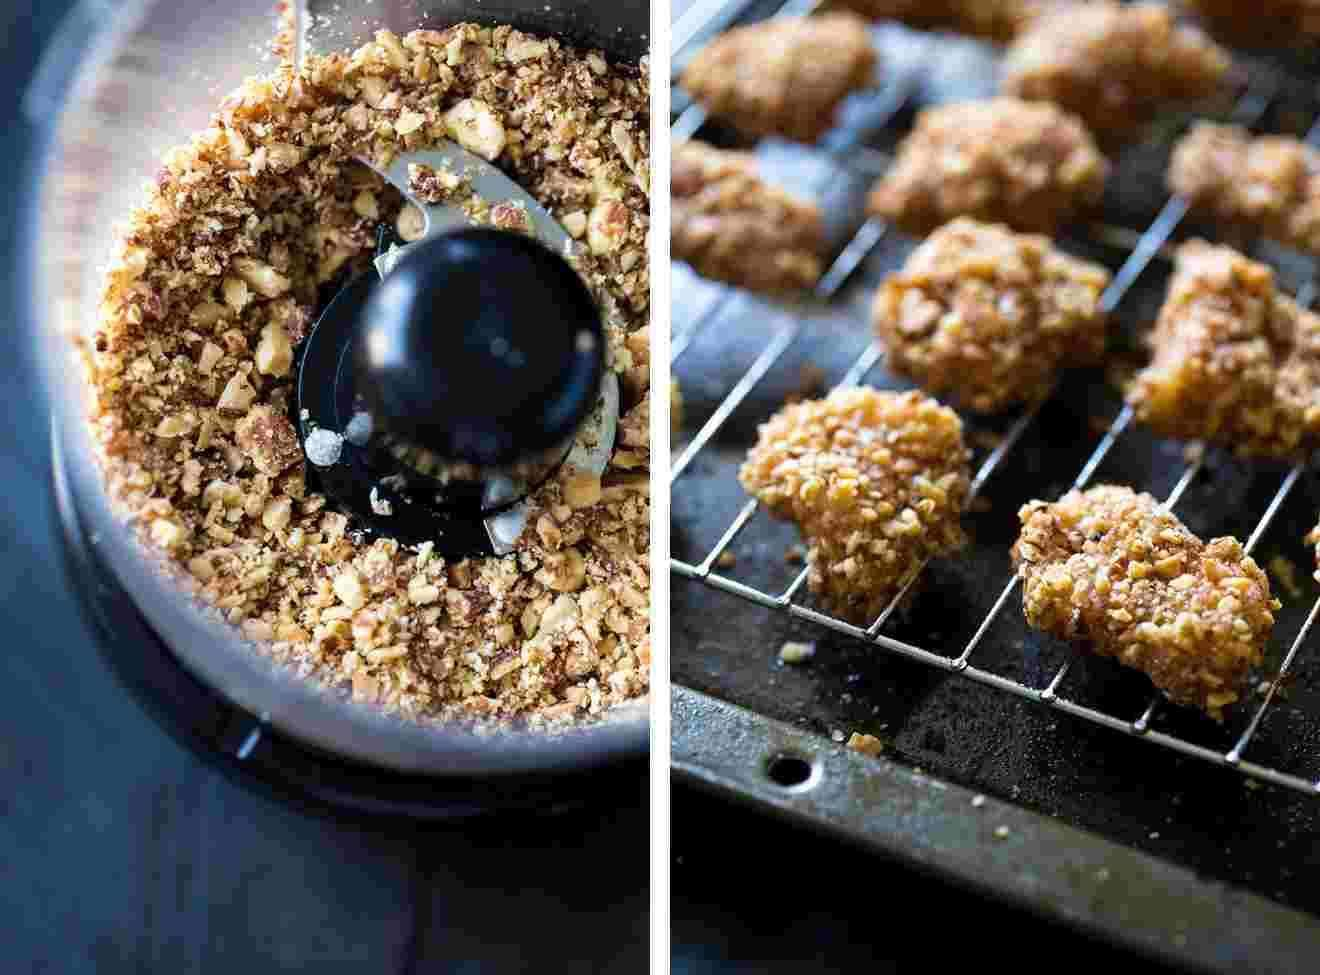 6 Ingredient Almond Chicken Bites with Honey Mustard Dip - SO easy, crunchy and healthy! Using Greek Yogurt in the dip makes this a healthy appetizer!   Foodfaithfitness.com   #recipe